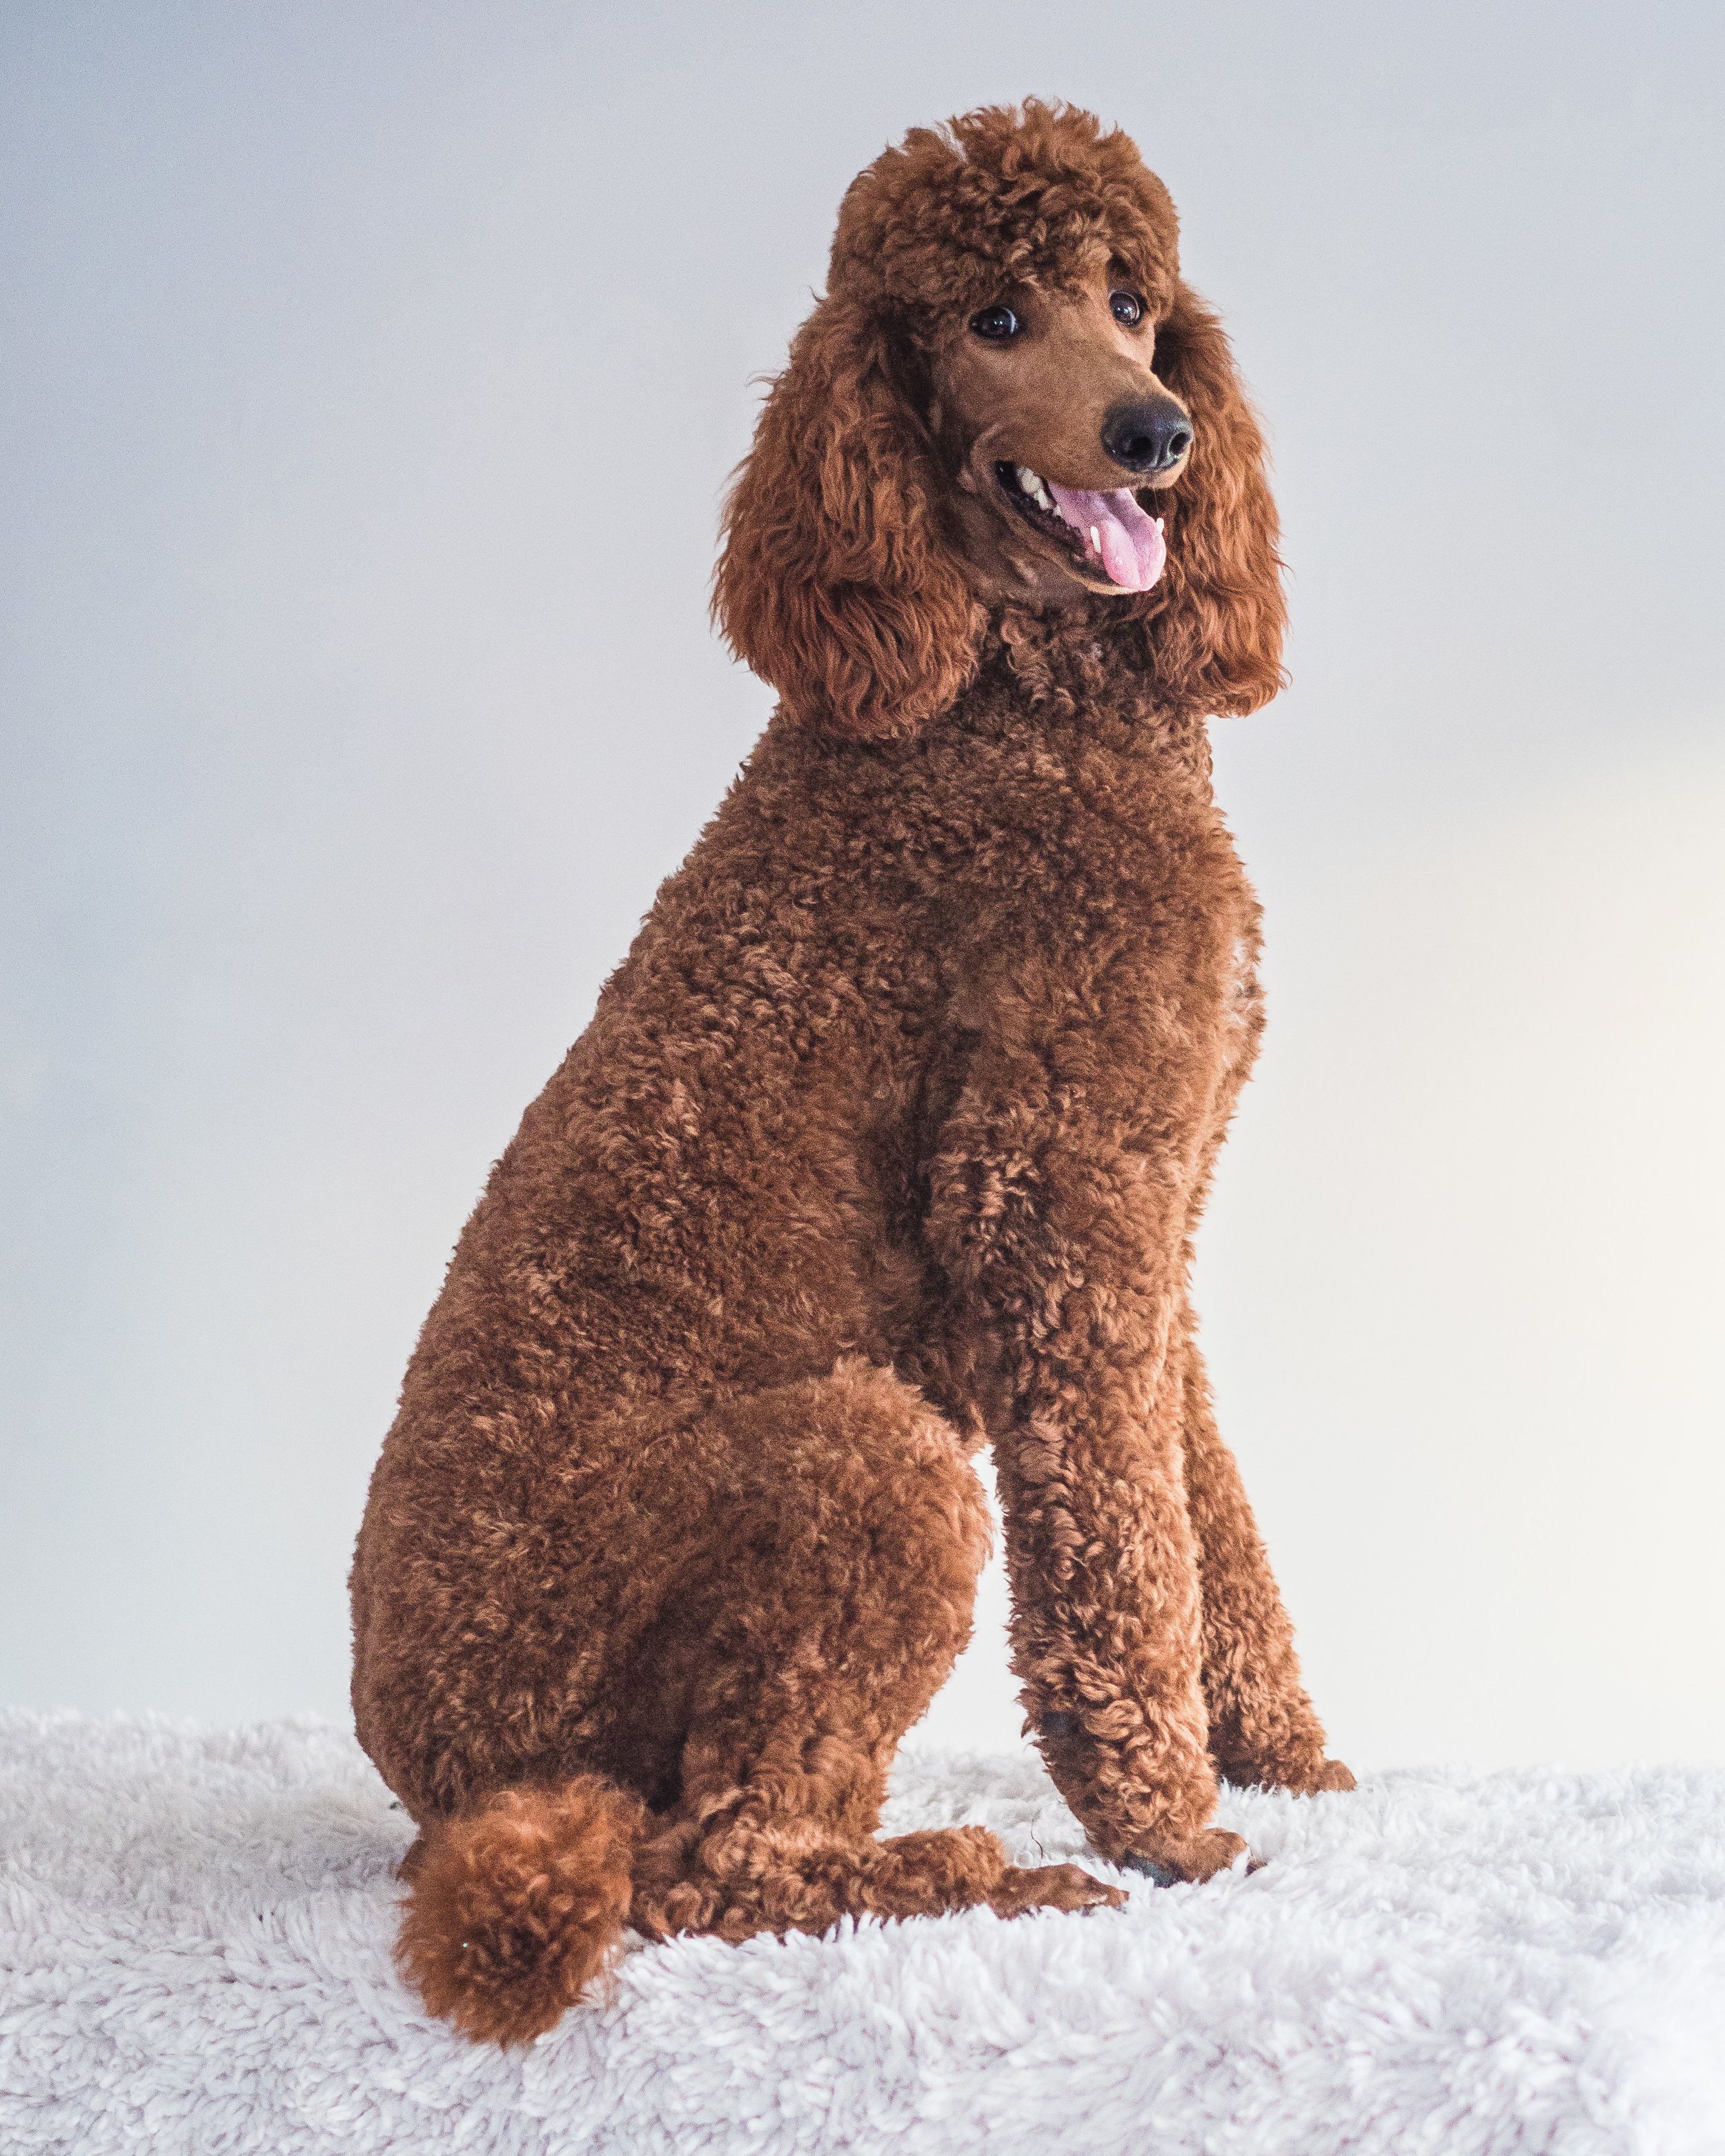 The classic poodle face is usually shaved. But certainly, a shaved face is not required!